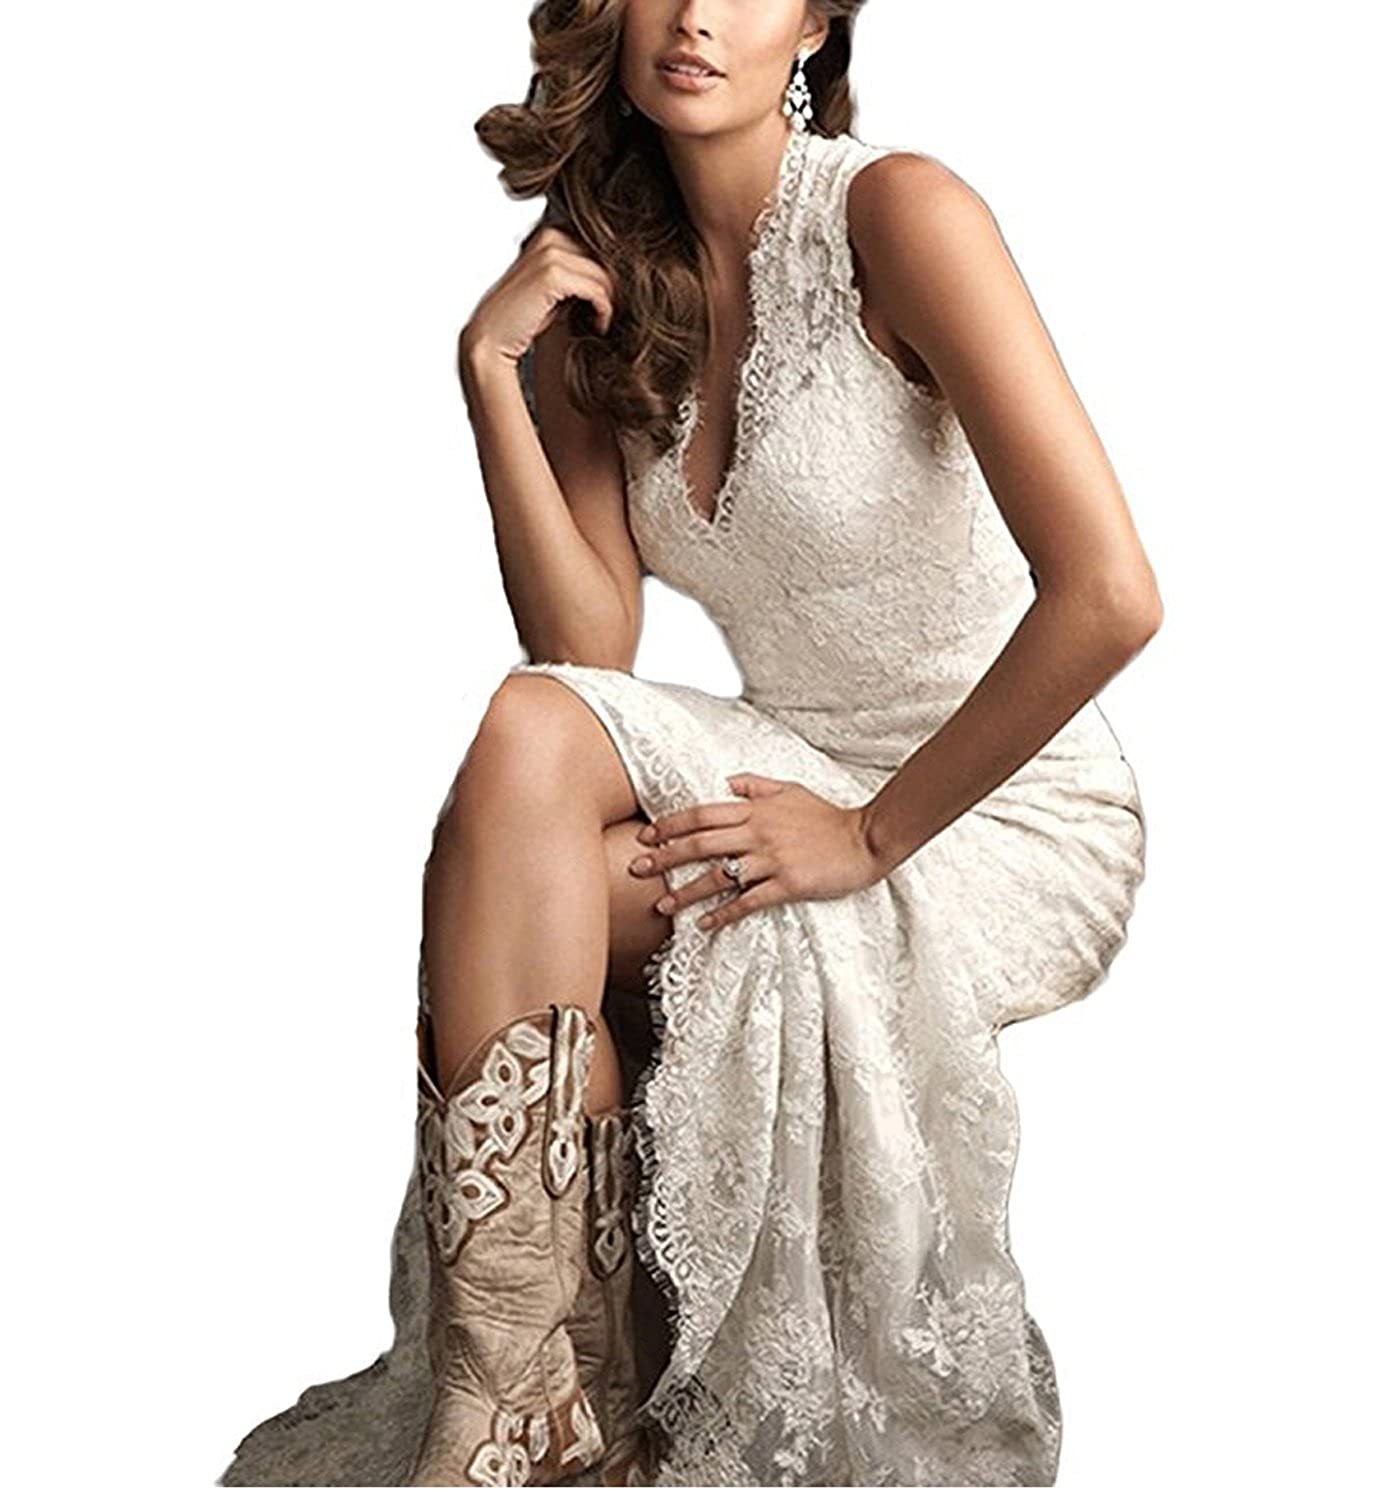 7c45395cc255 ... Country Style Bridal Wedding Dress. Wholesale Price:119.99 - $139.99.  Material:Lace Imported Please refer to our size chart on the left and  choose the ...